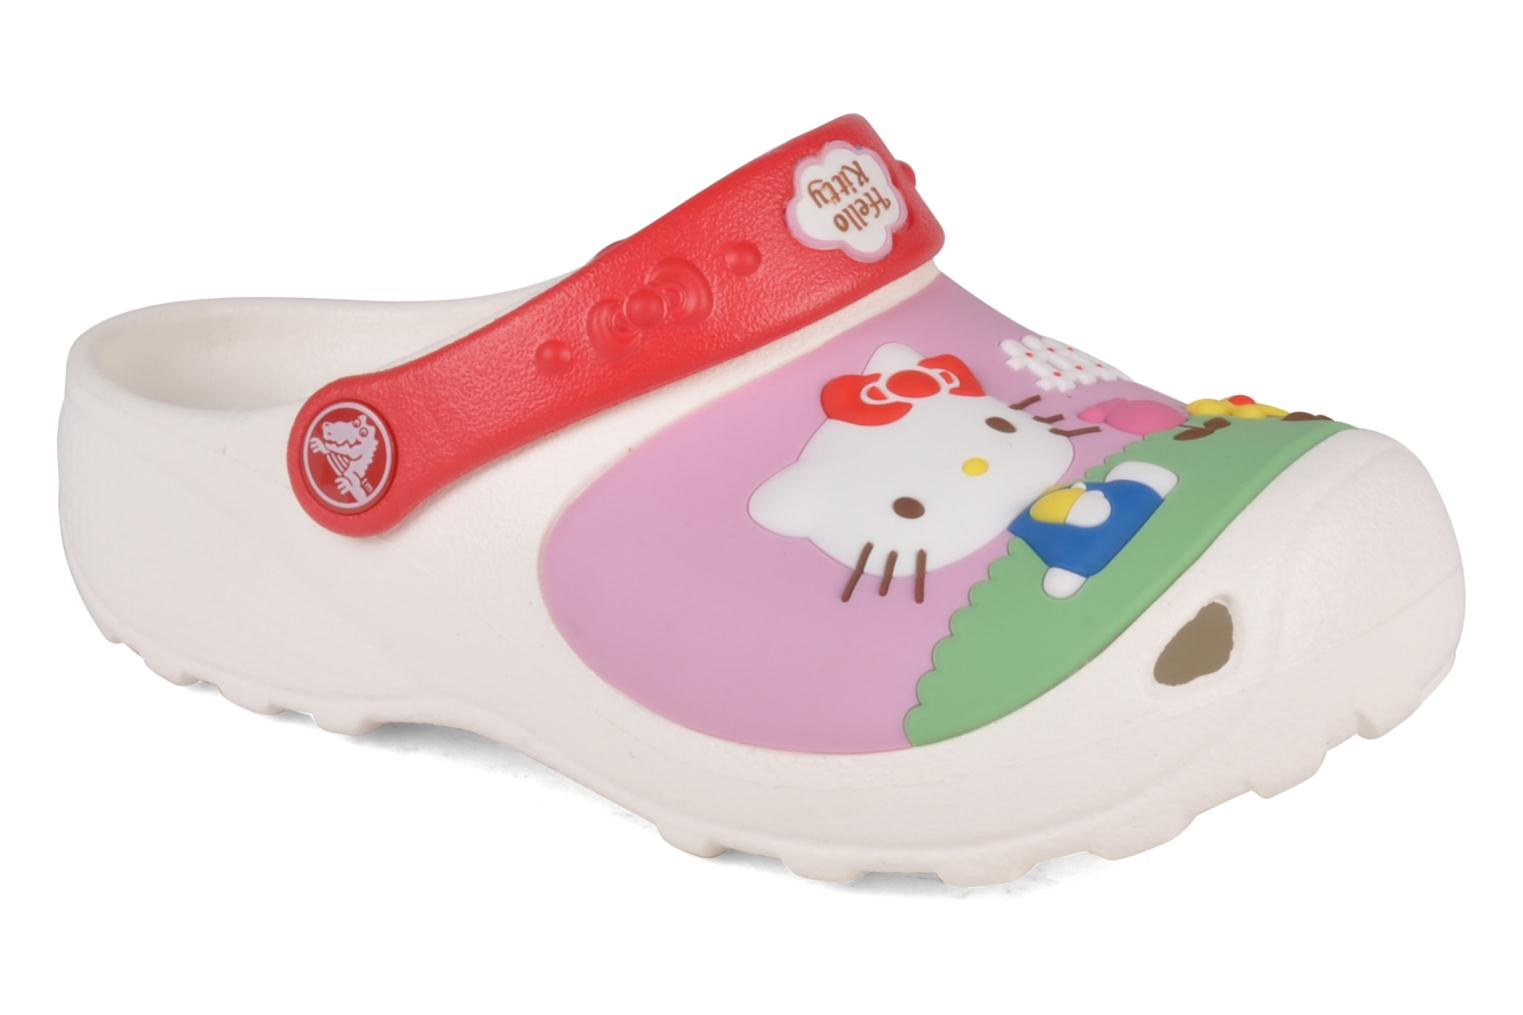 Crocs Hello kitty custom clog Sandals in Multicolor at Sarenza co uk (49556)